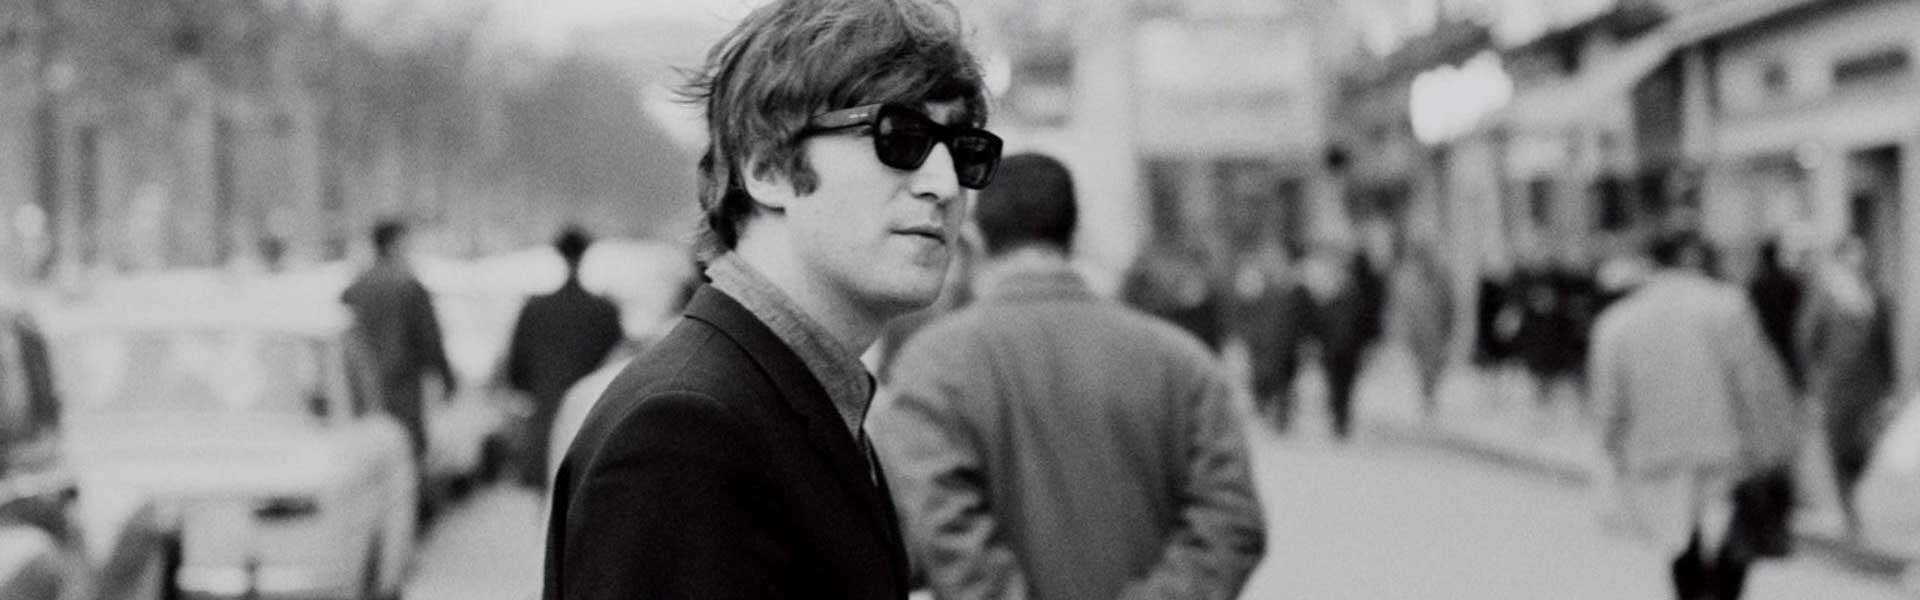 thesis on john lennon Download thesis statement on john lennon's imagine in our database or order an original thesis paper that will be written by one of our staff writers and delivered according to the deadline.